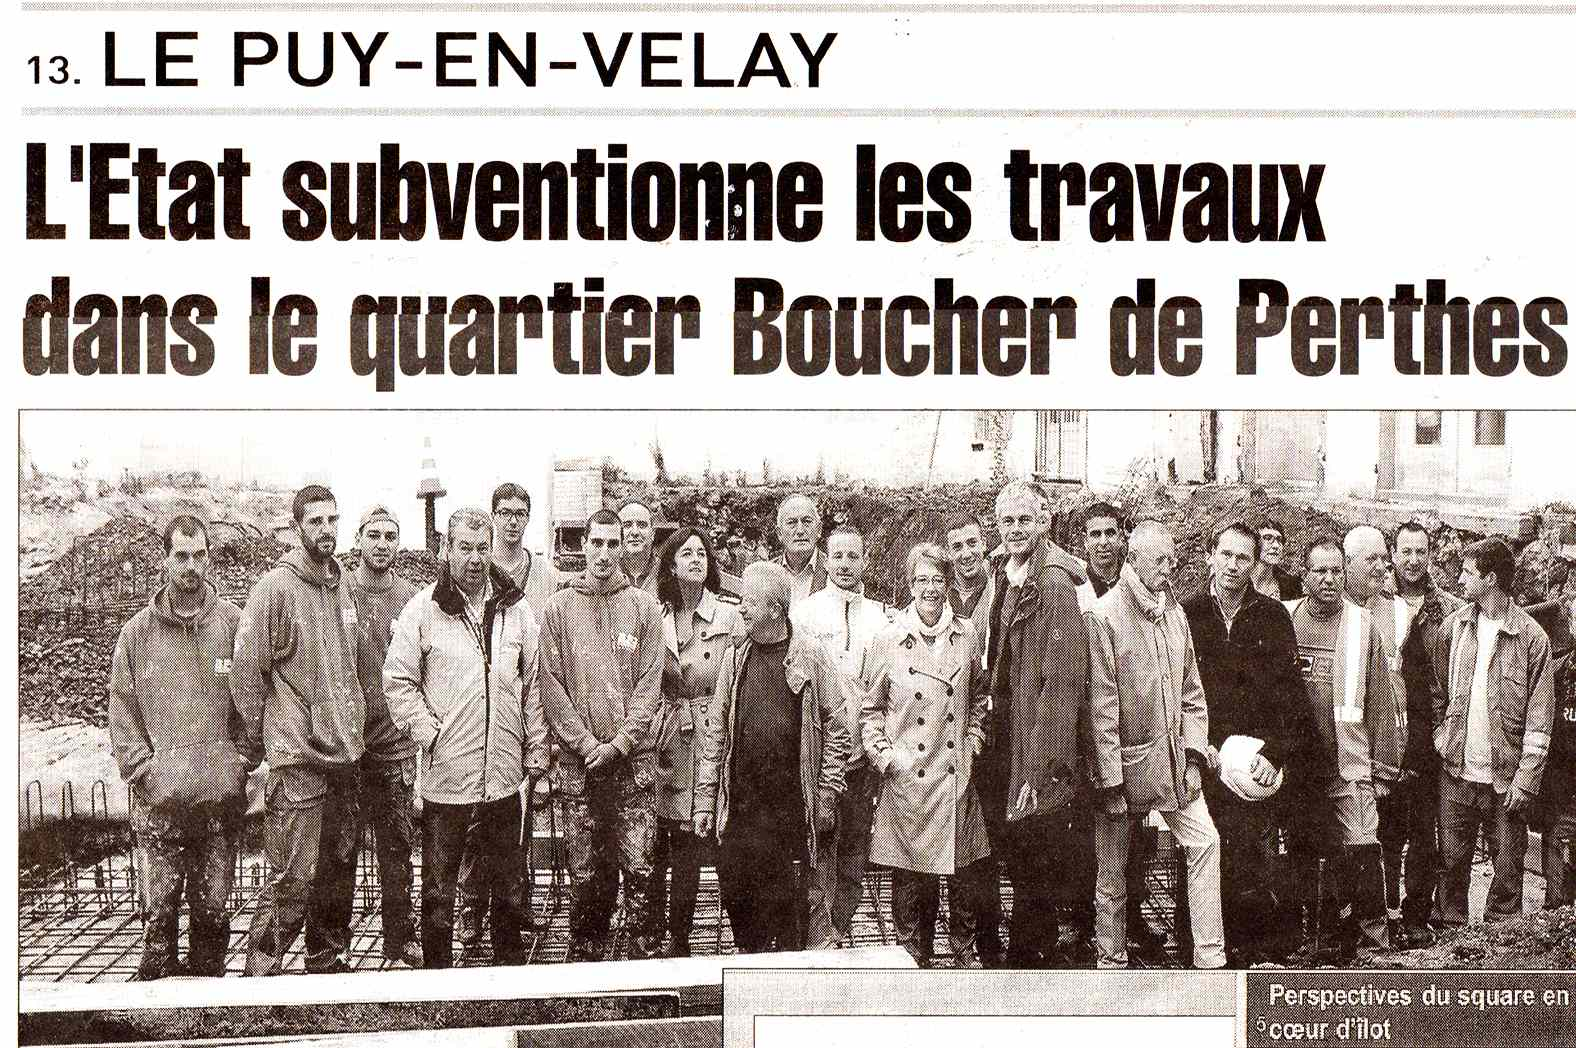 Subvention des travaux dans le quartier Boucher de Perthes